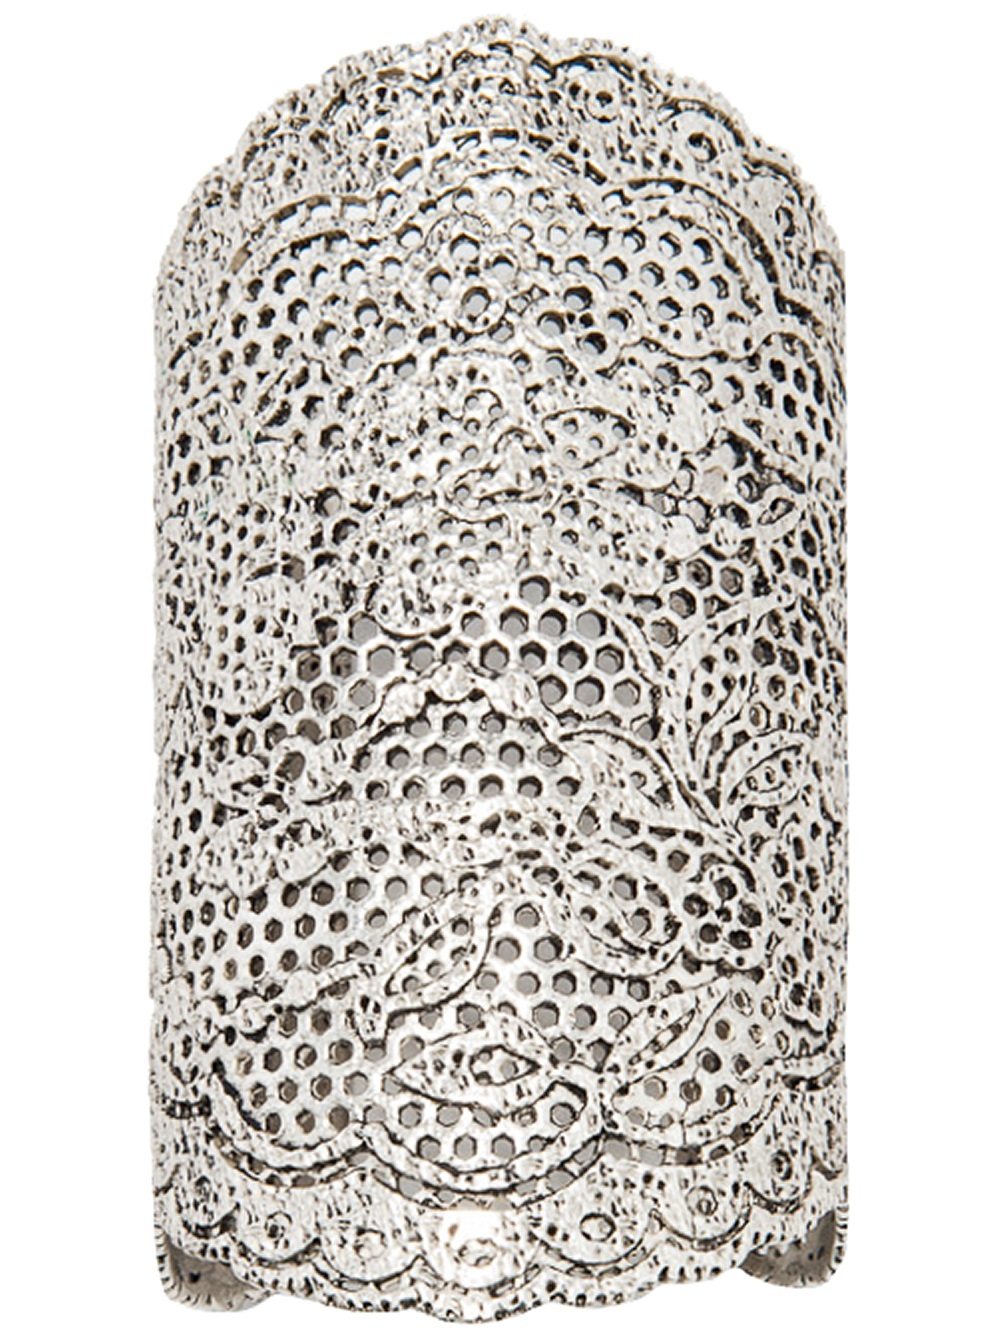 Aurelie Bidermann Lace Cuff - Uzerai - Farfetch.com_files.jpg